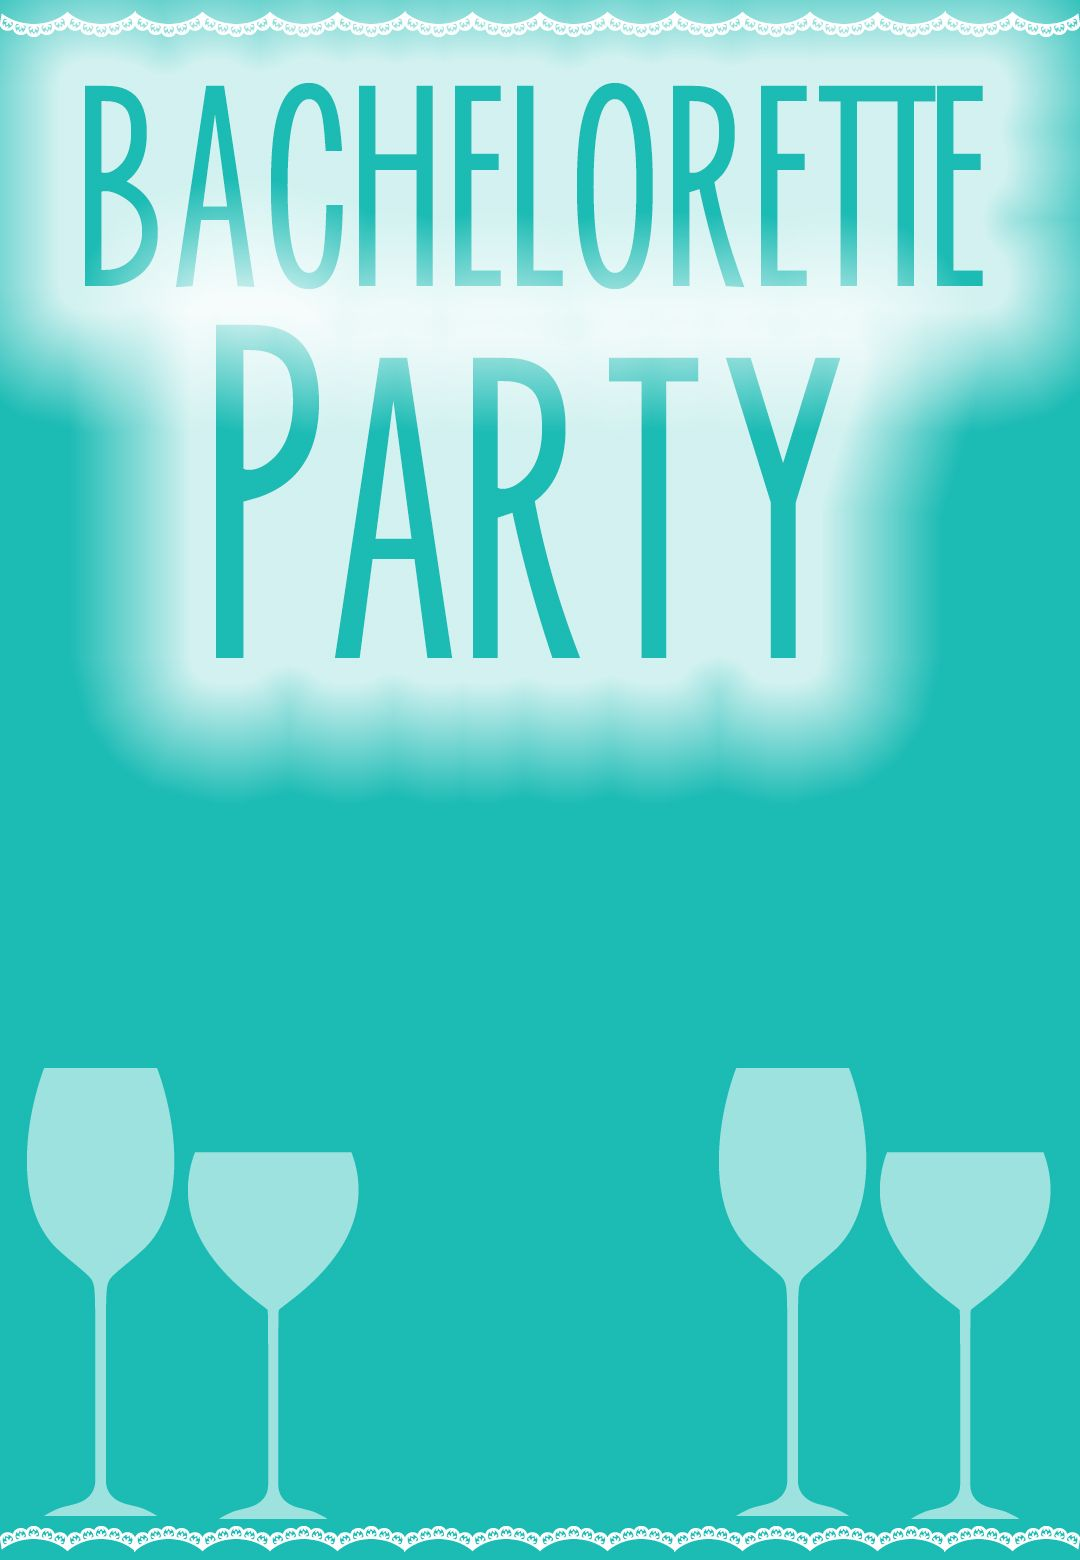 This Is A Really Cute And FREE Bachelorette Party Invitation It Has An Option For Customization Perfect Bridal Blue Theme Or Pretty